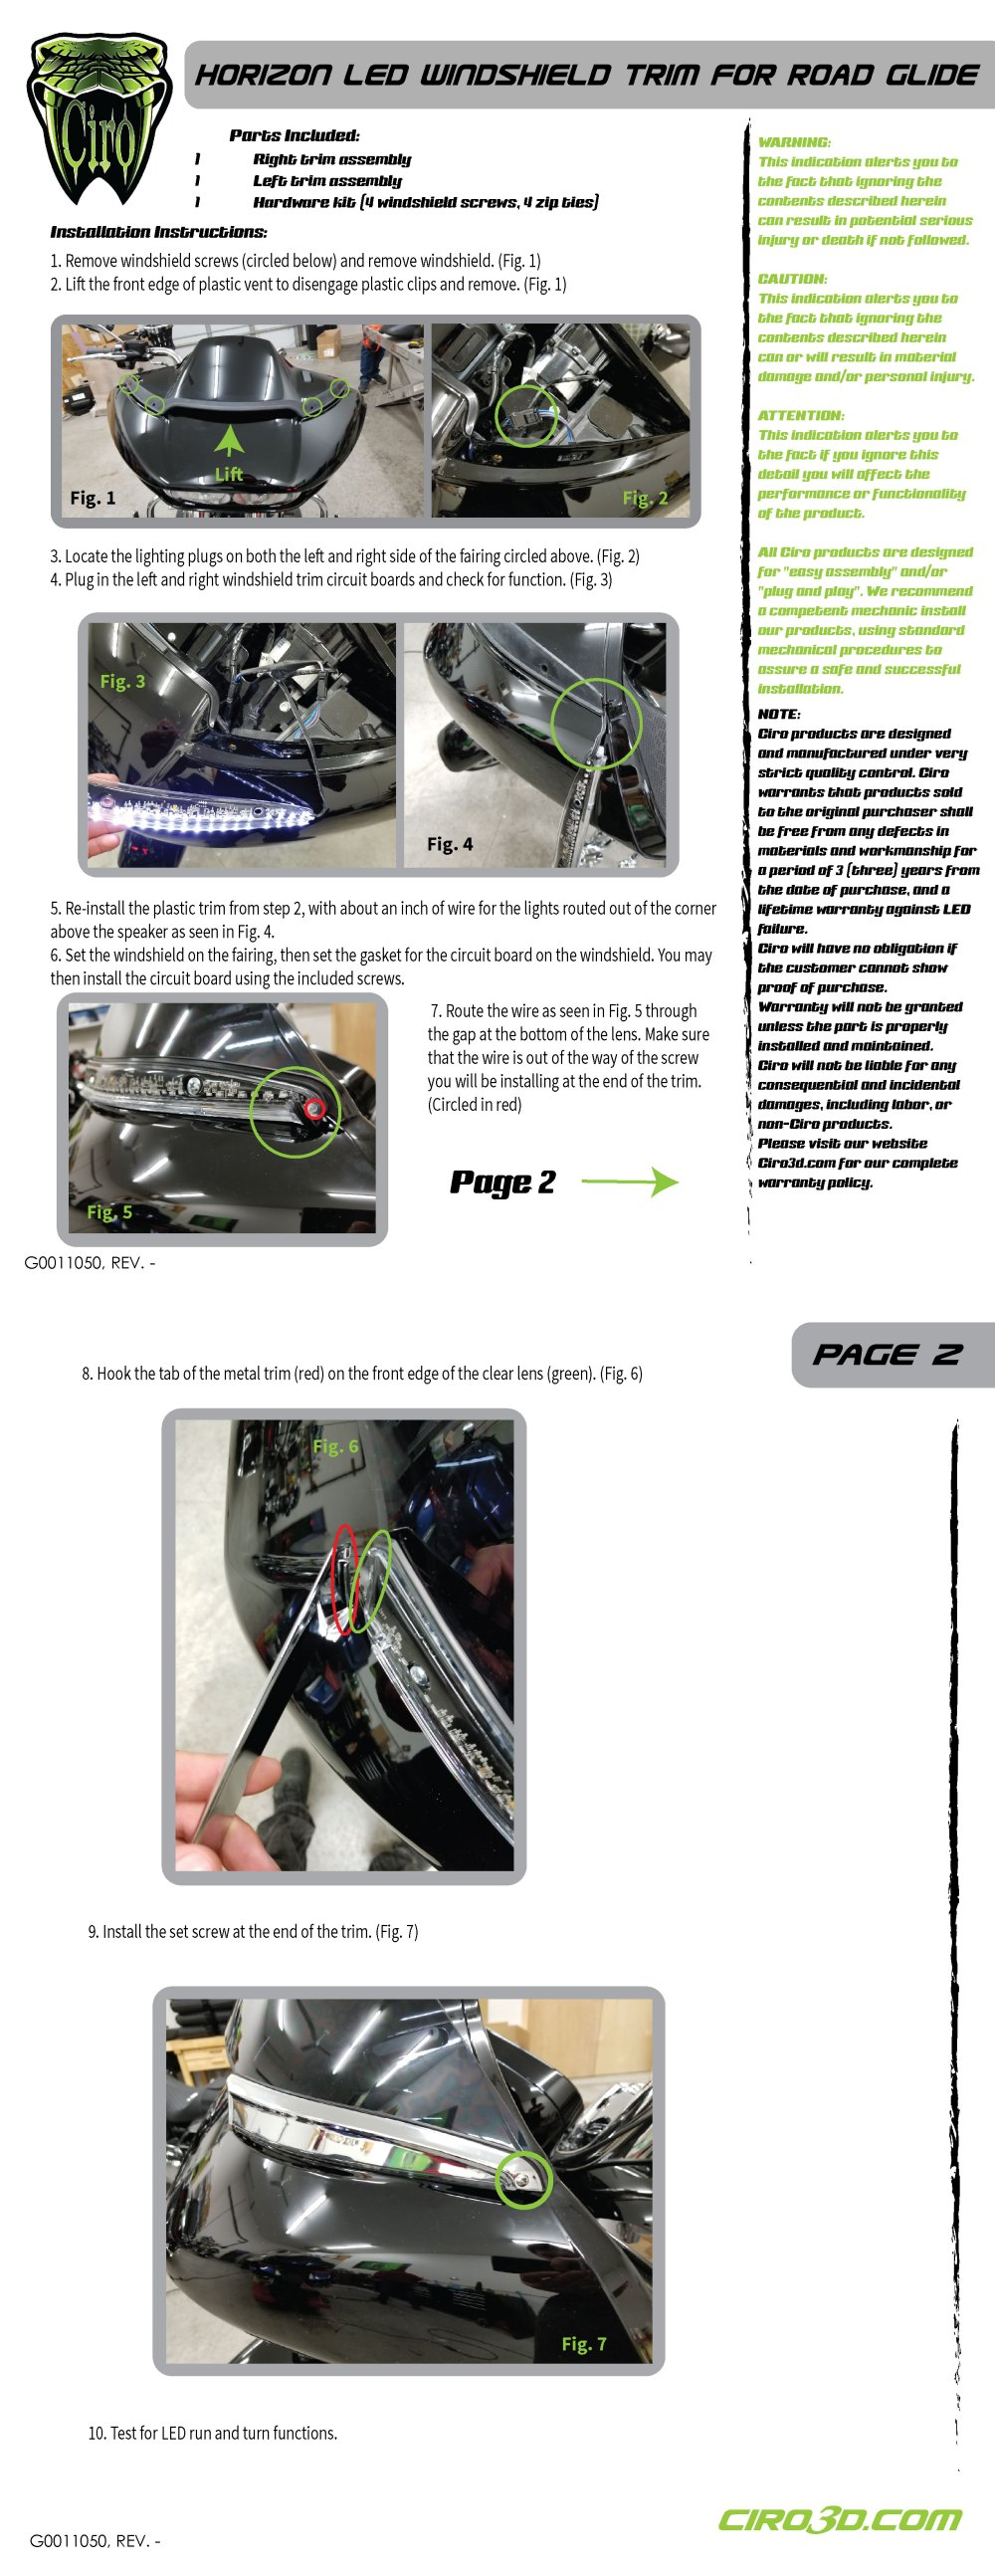 medium resolution of related products lighted vent trim for road glide